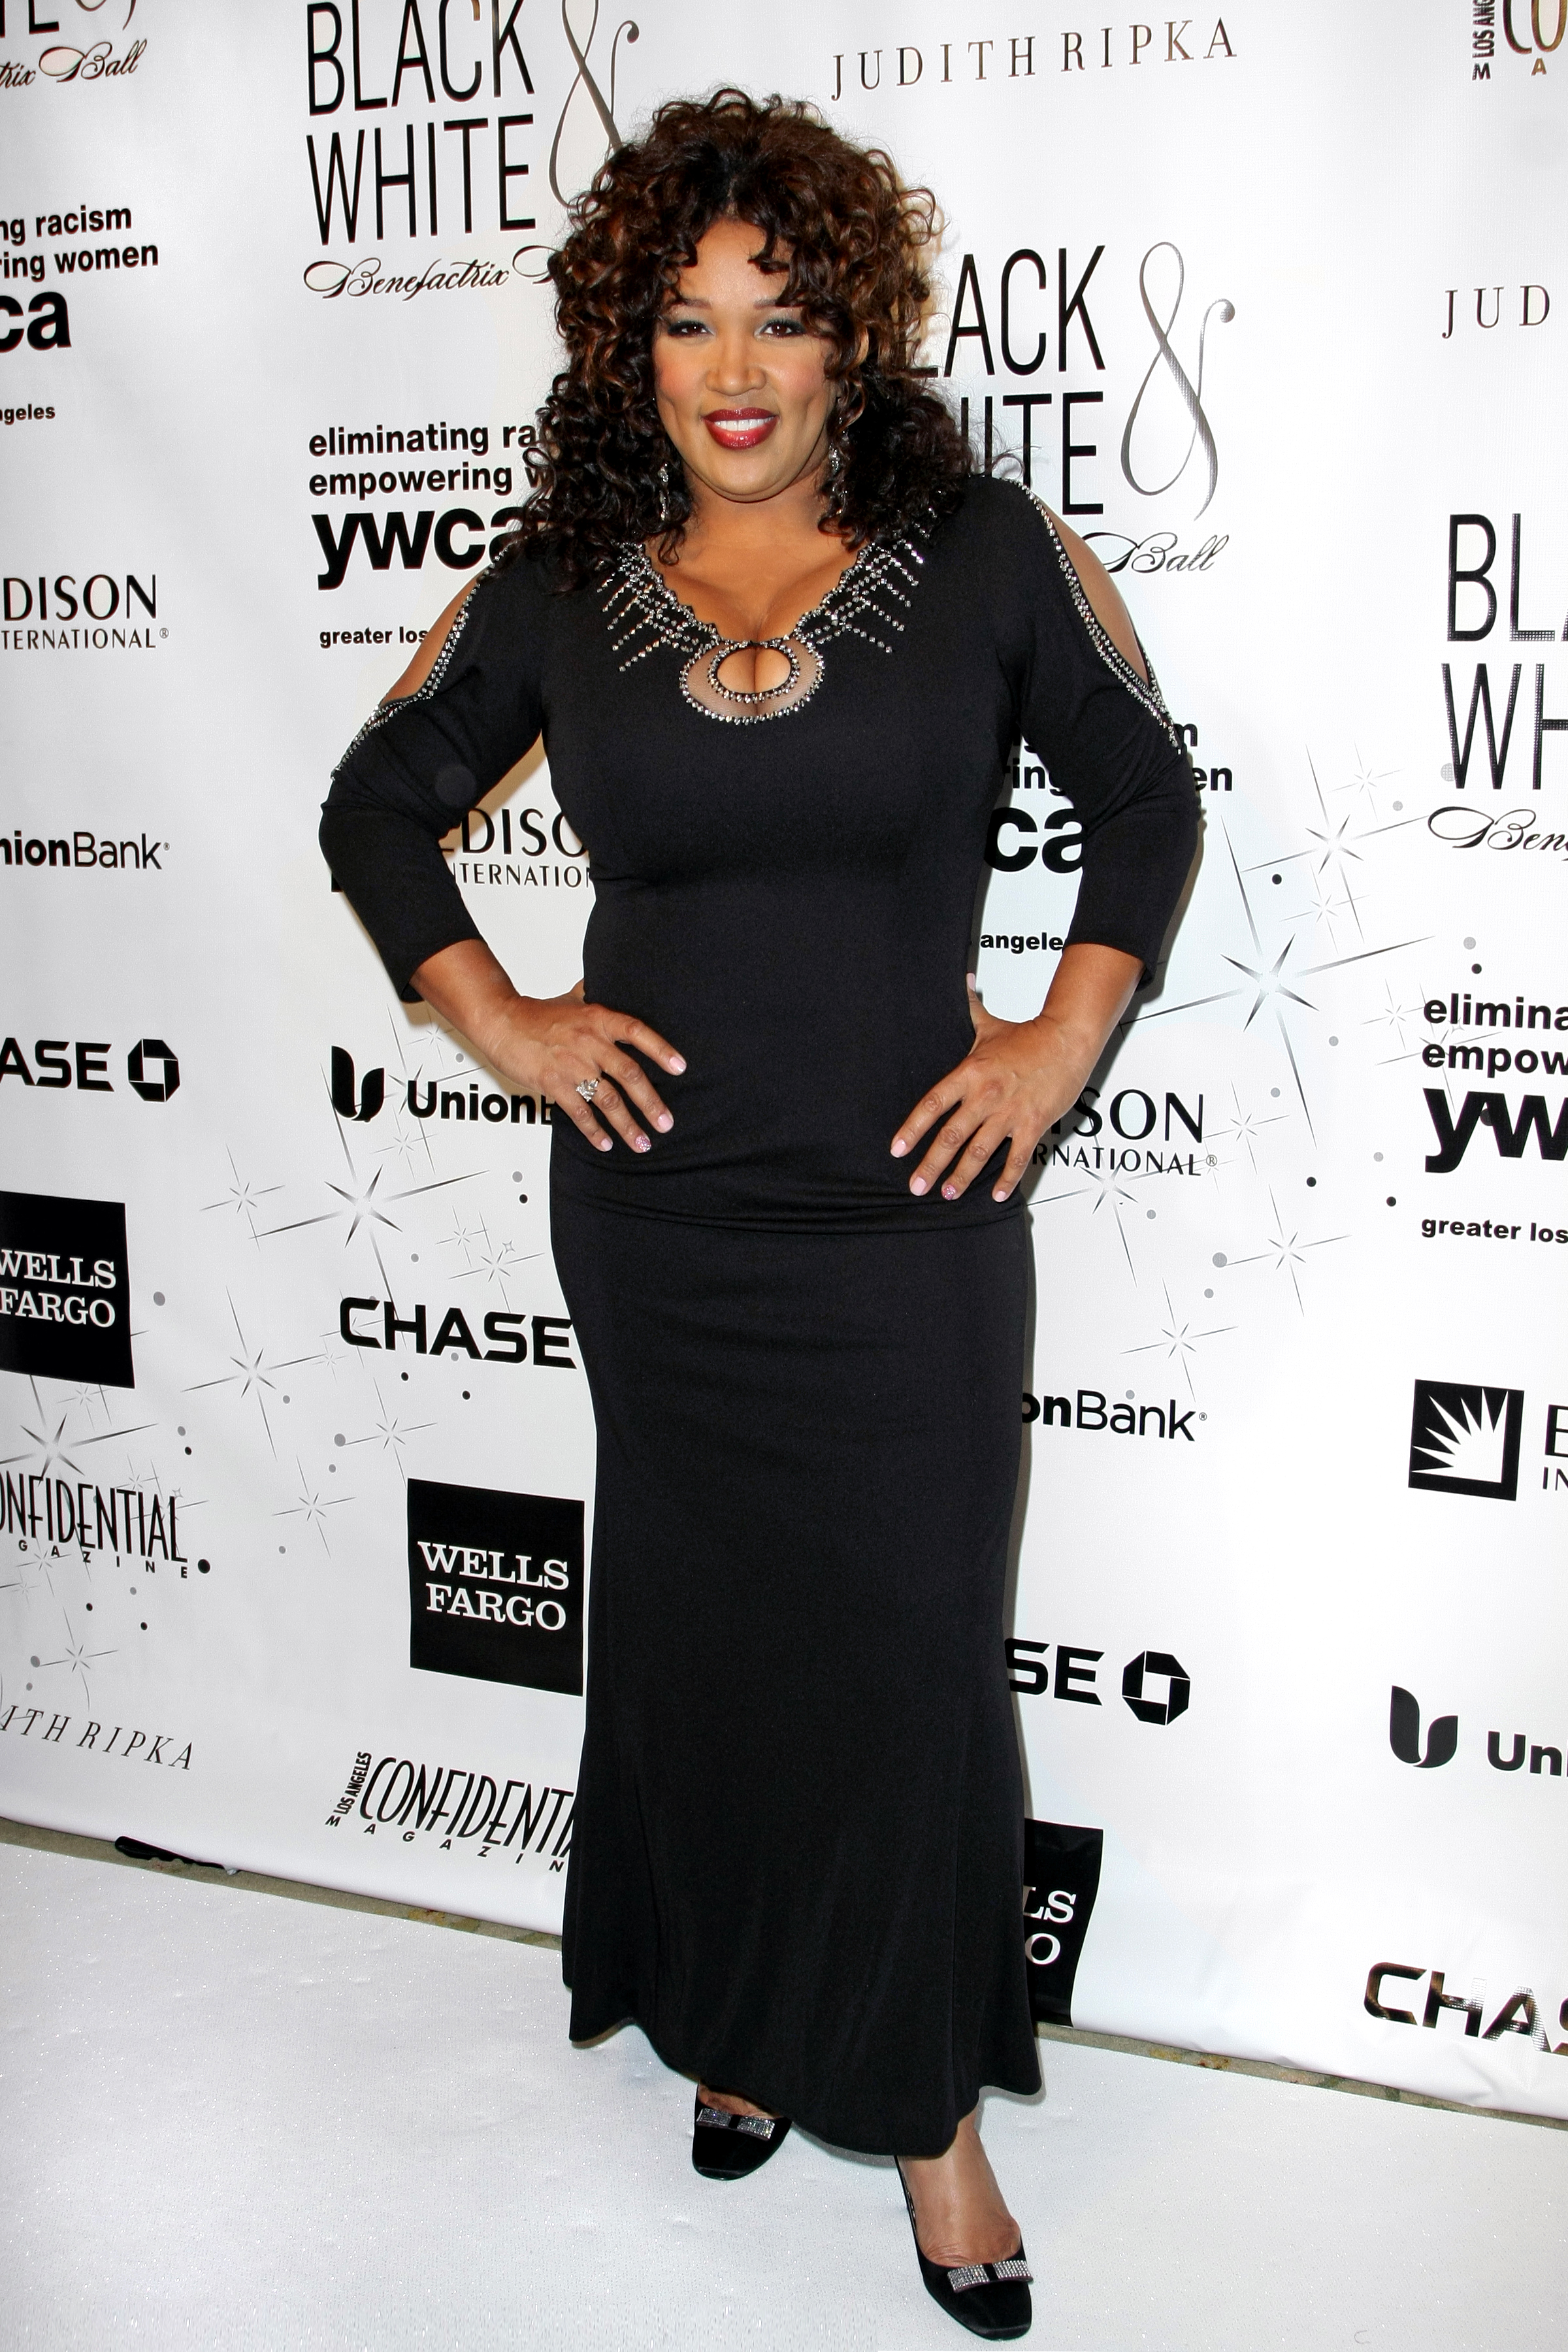 Kym Whitley Booty